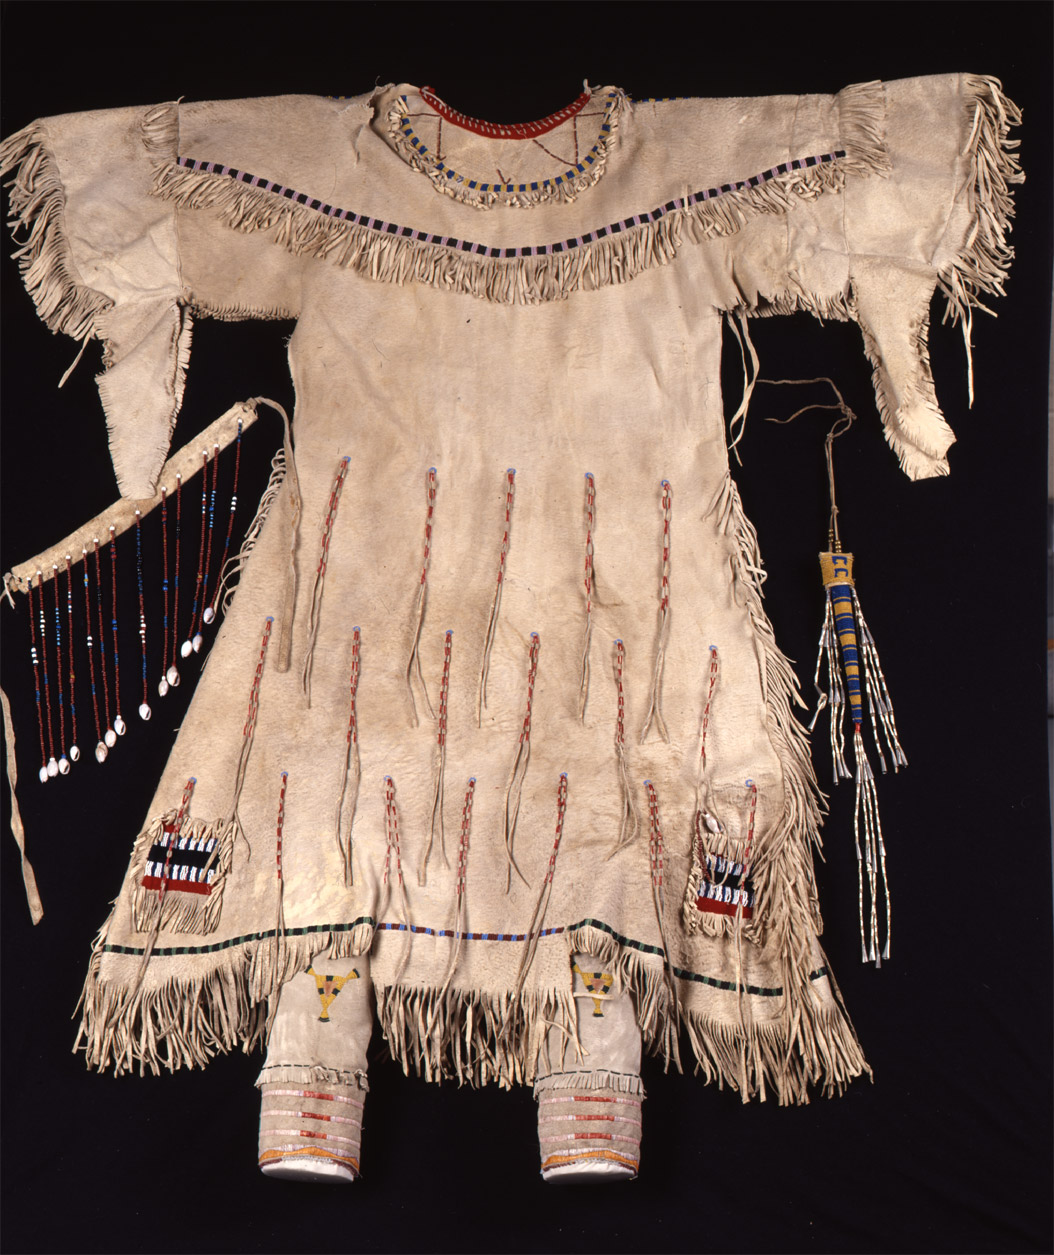 """Young woman's buckskin dress, owned by Spotted Crow Woman.""   This dress was made by Spotted Crow Woman.  A few years later, Mink (Hannah Leavings Grant) wore this dress when she posed for the statue of Sakakawea that now stands in front of the State Historical Society of North Dakota Heritage Center.  The dress was the most highly valued item in the collection at $85. SHSND Museum 01442"